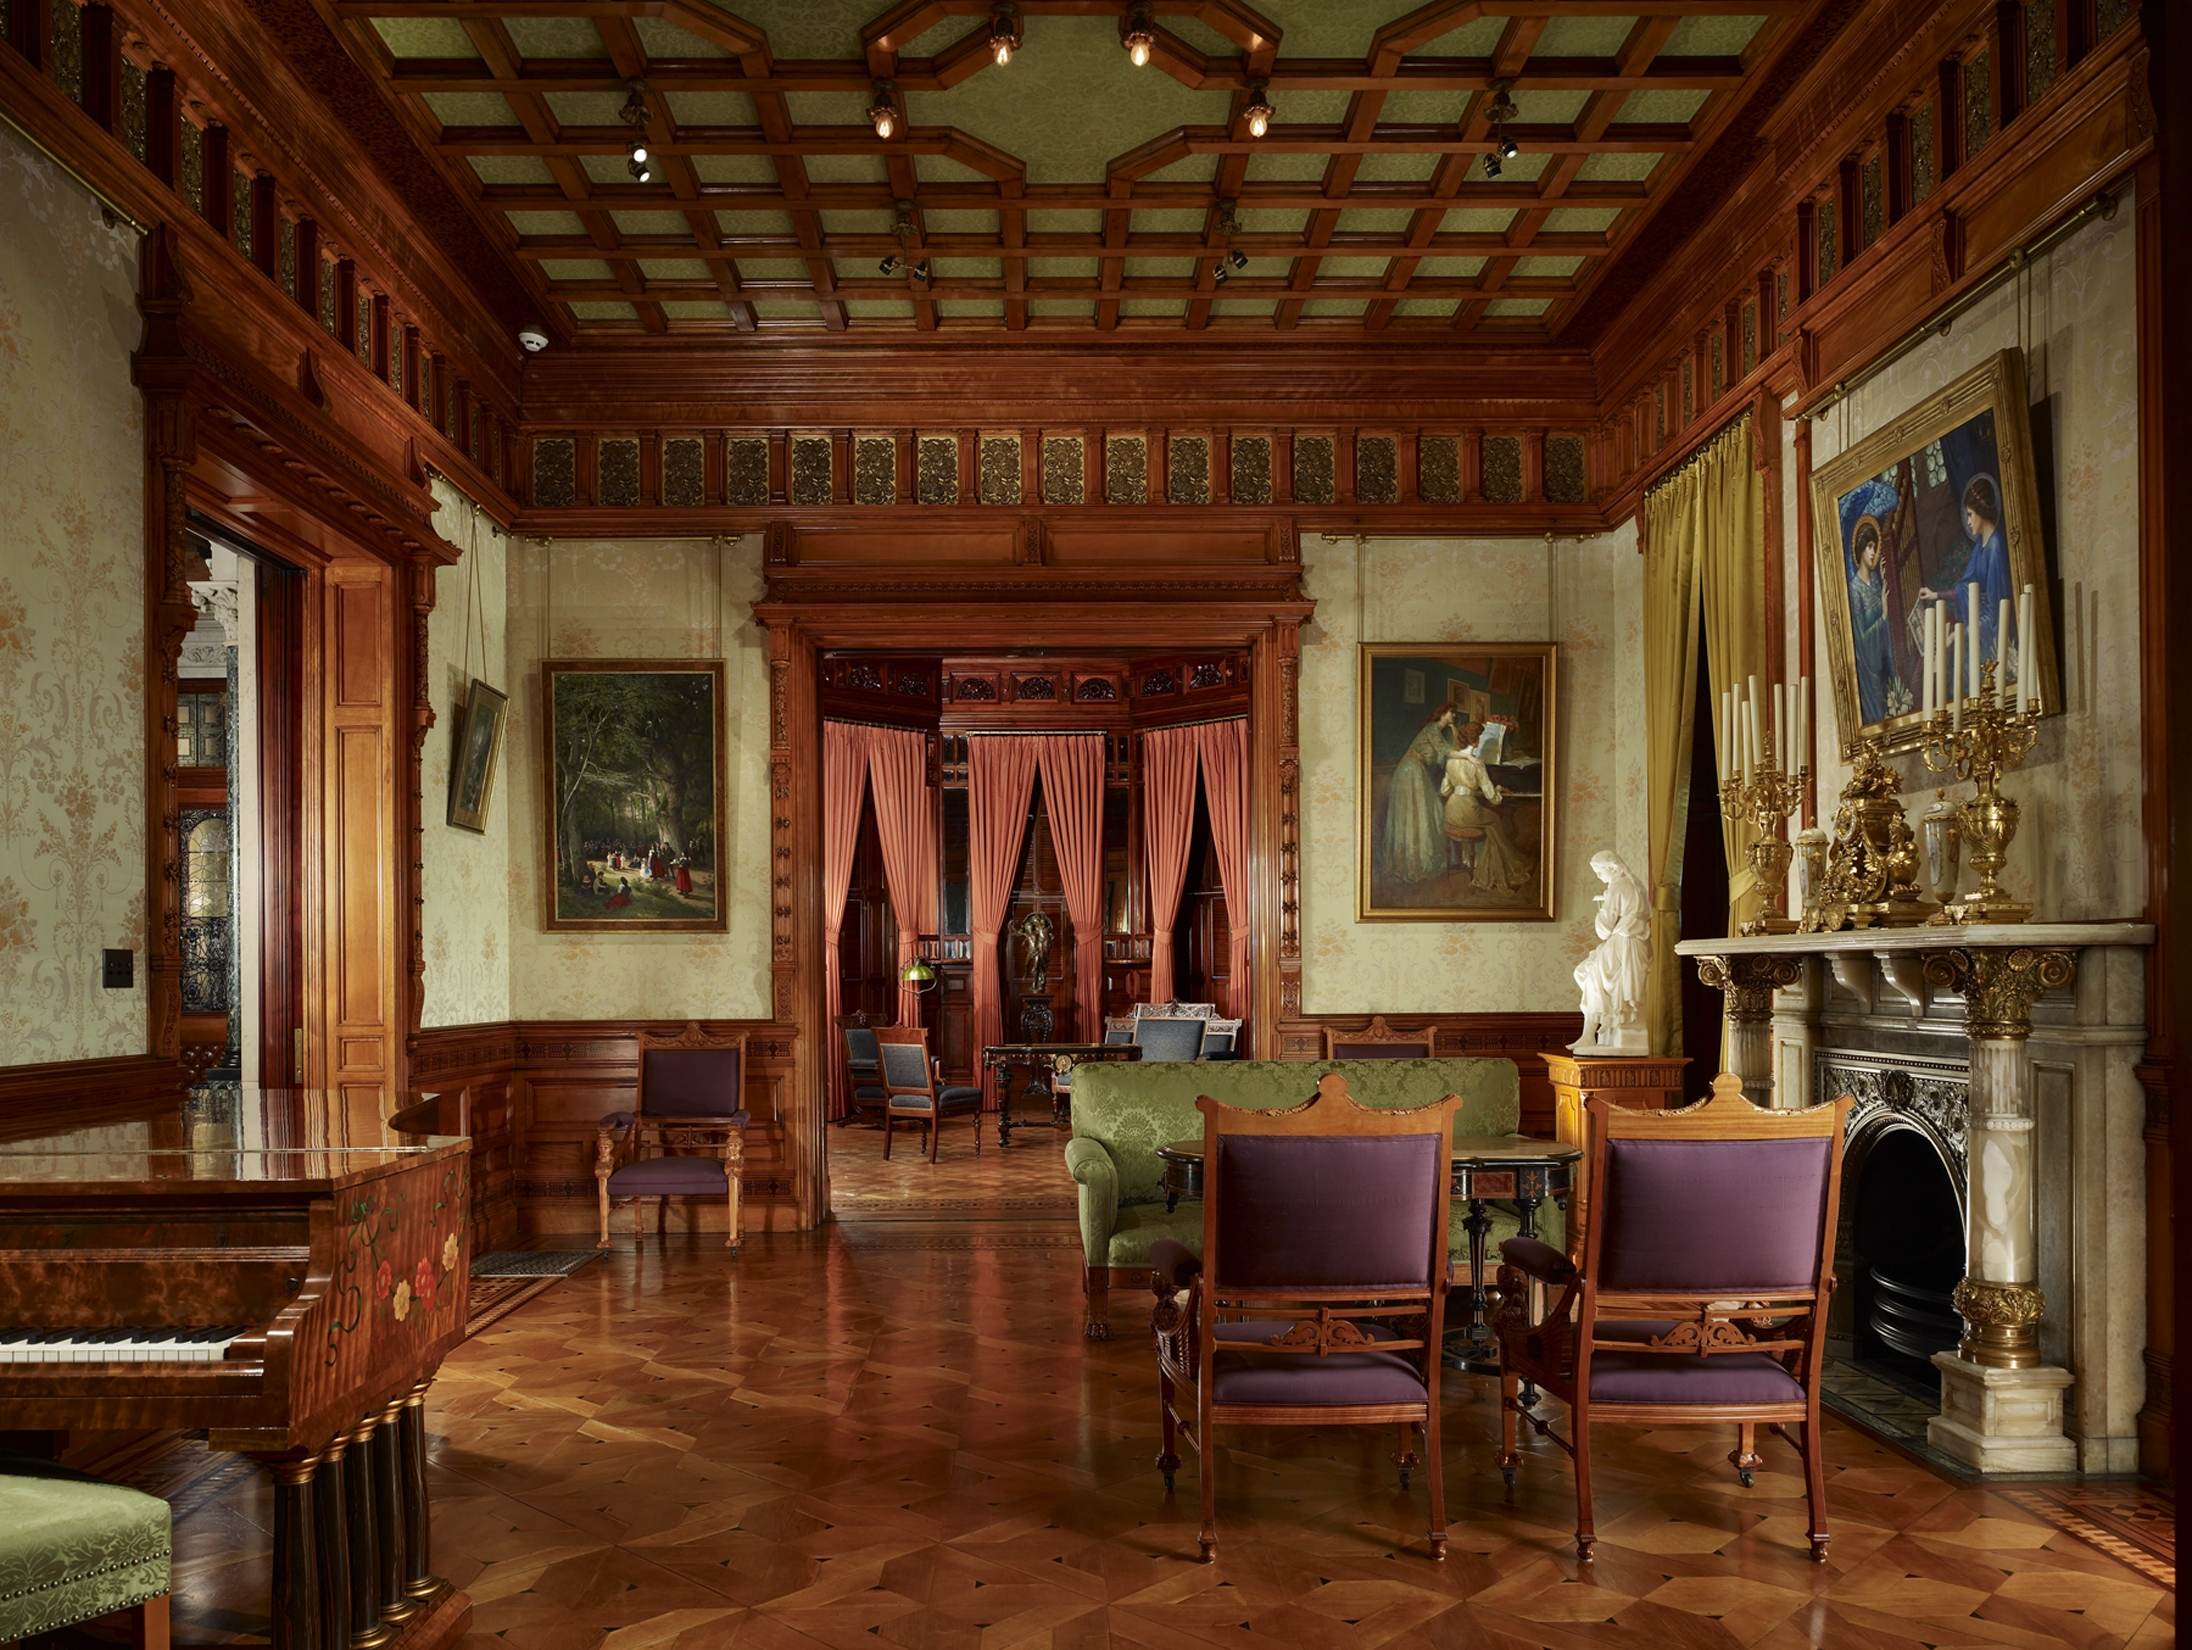 Richard H. Driehaus Museum, Drawing Room. Foto 2008, Steve Hall of Hedrich Blessing